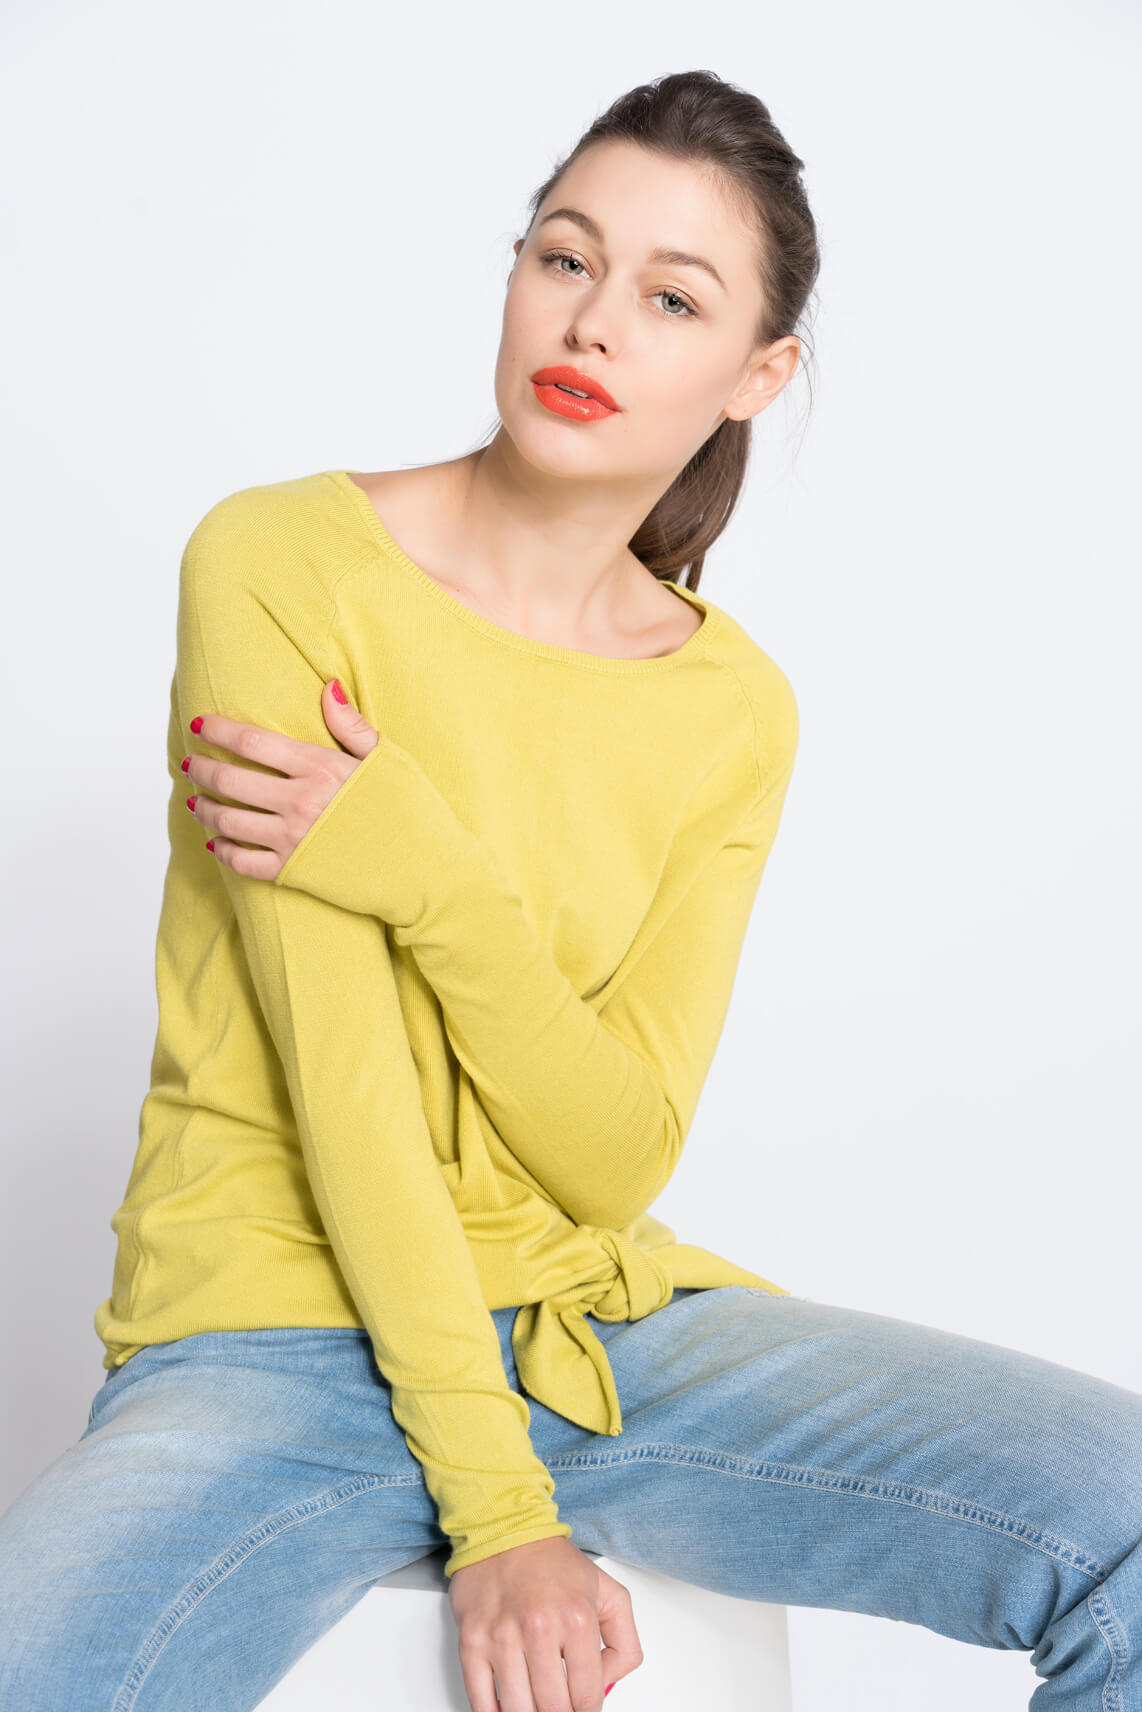 Anna Dames Pullover met knoopdetail 0